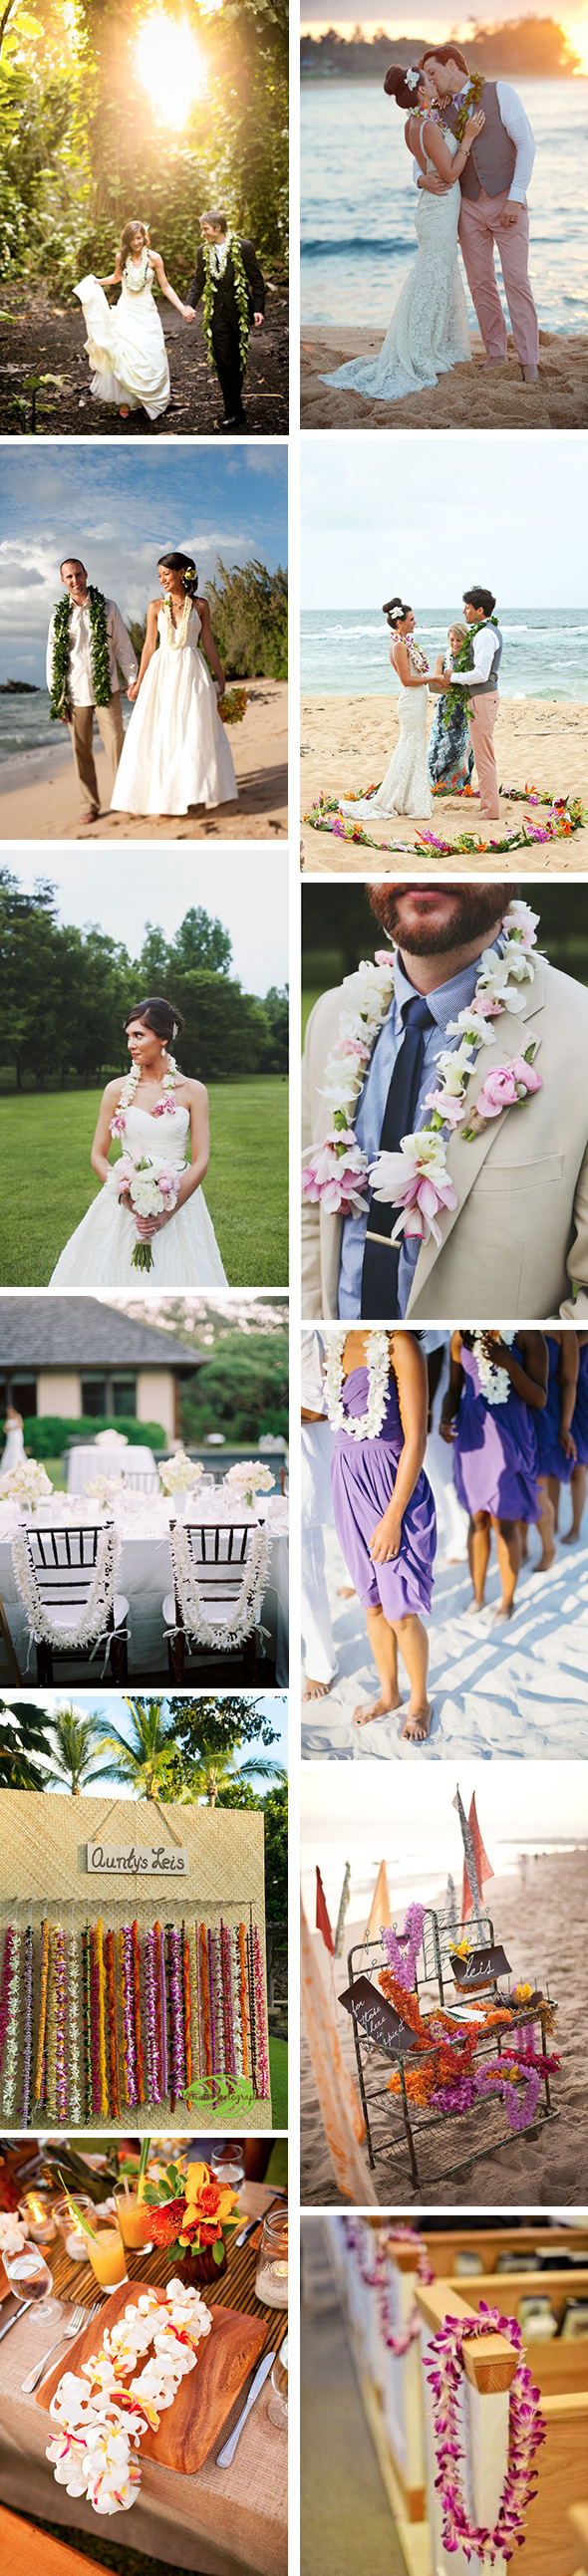 wedding lei ideas Ways to Weave in Wedding Leis